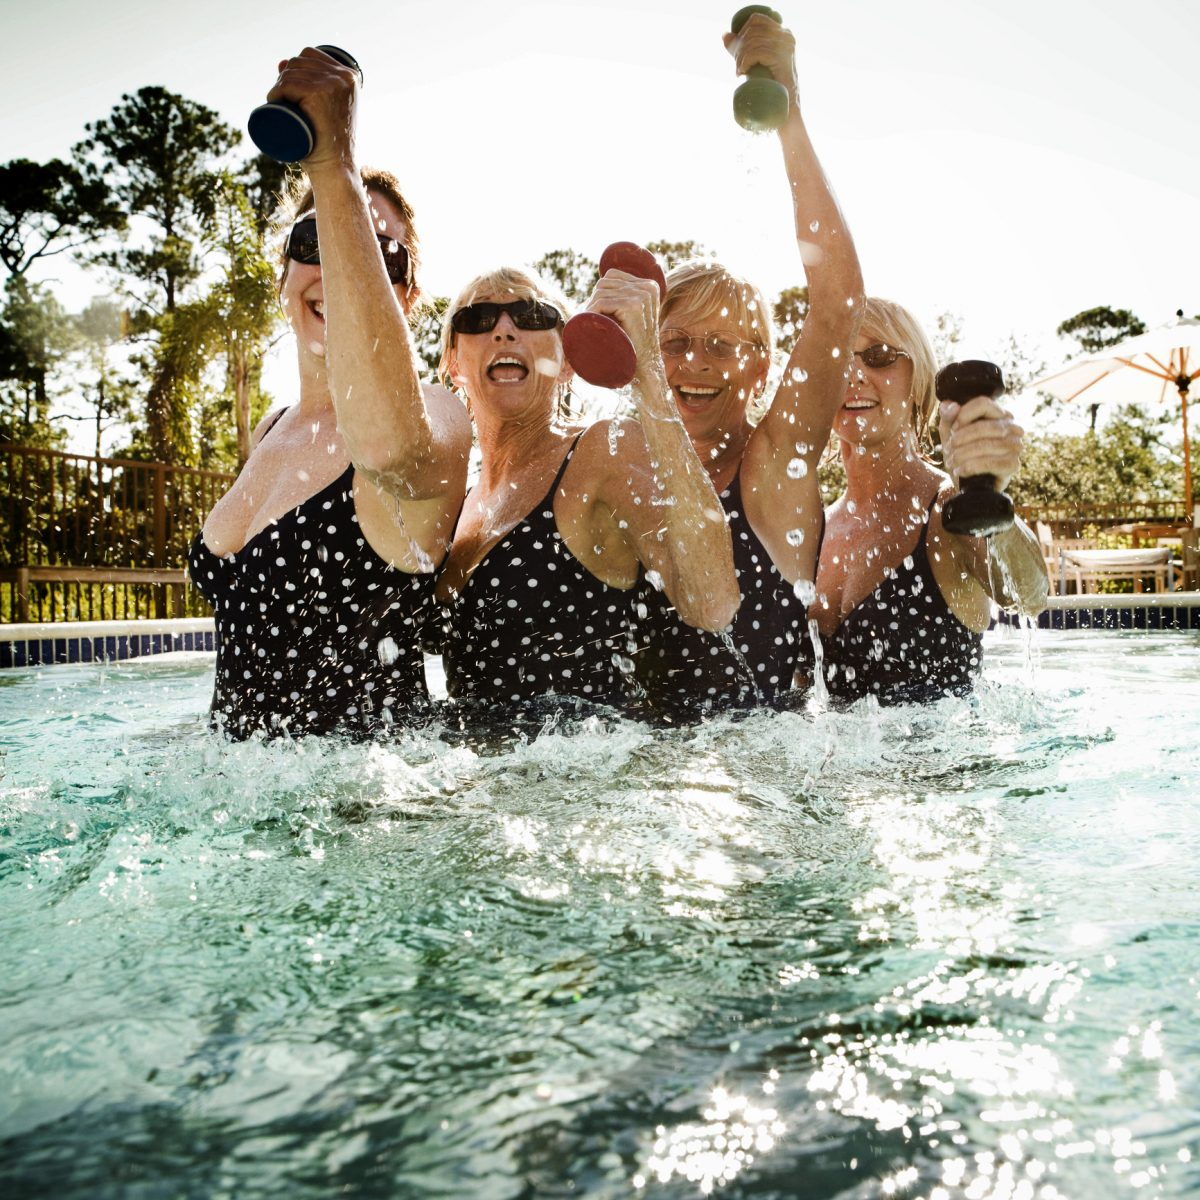 Make friends in water aerobics classes for fun and accountability.